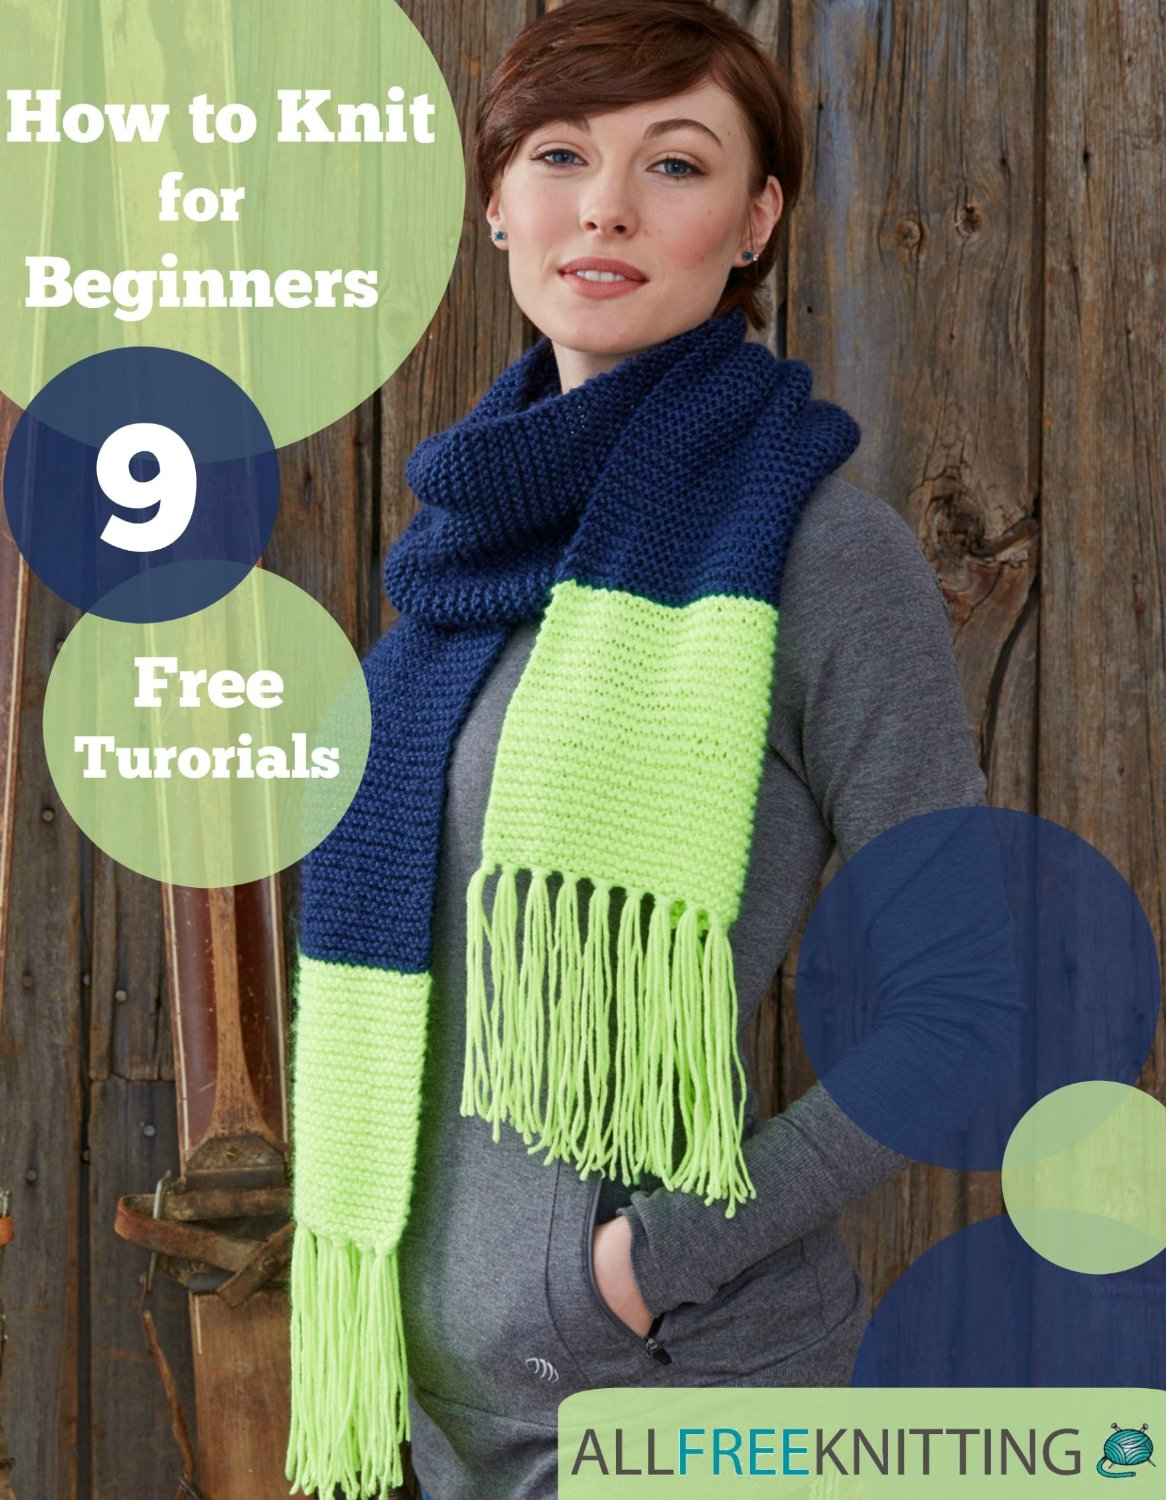 How to Knit for Beginners: 9 Free Tutorials free download